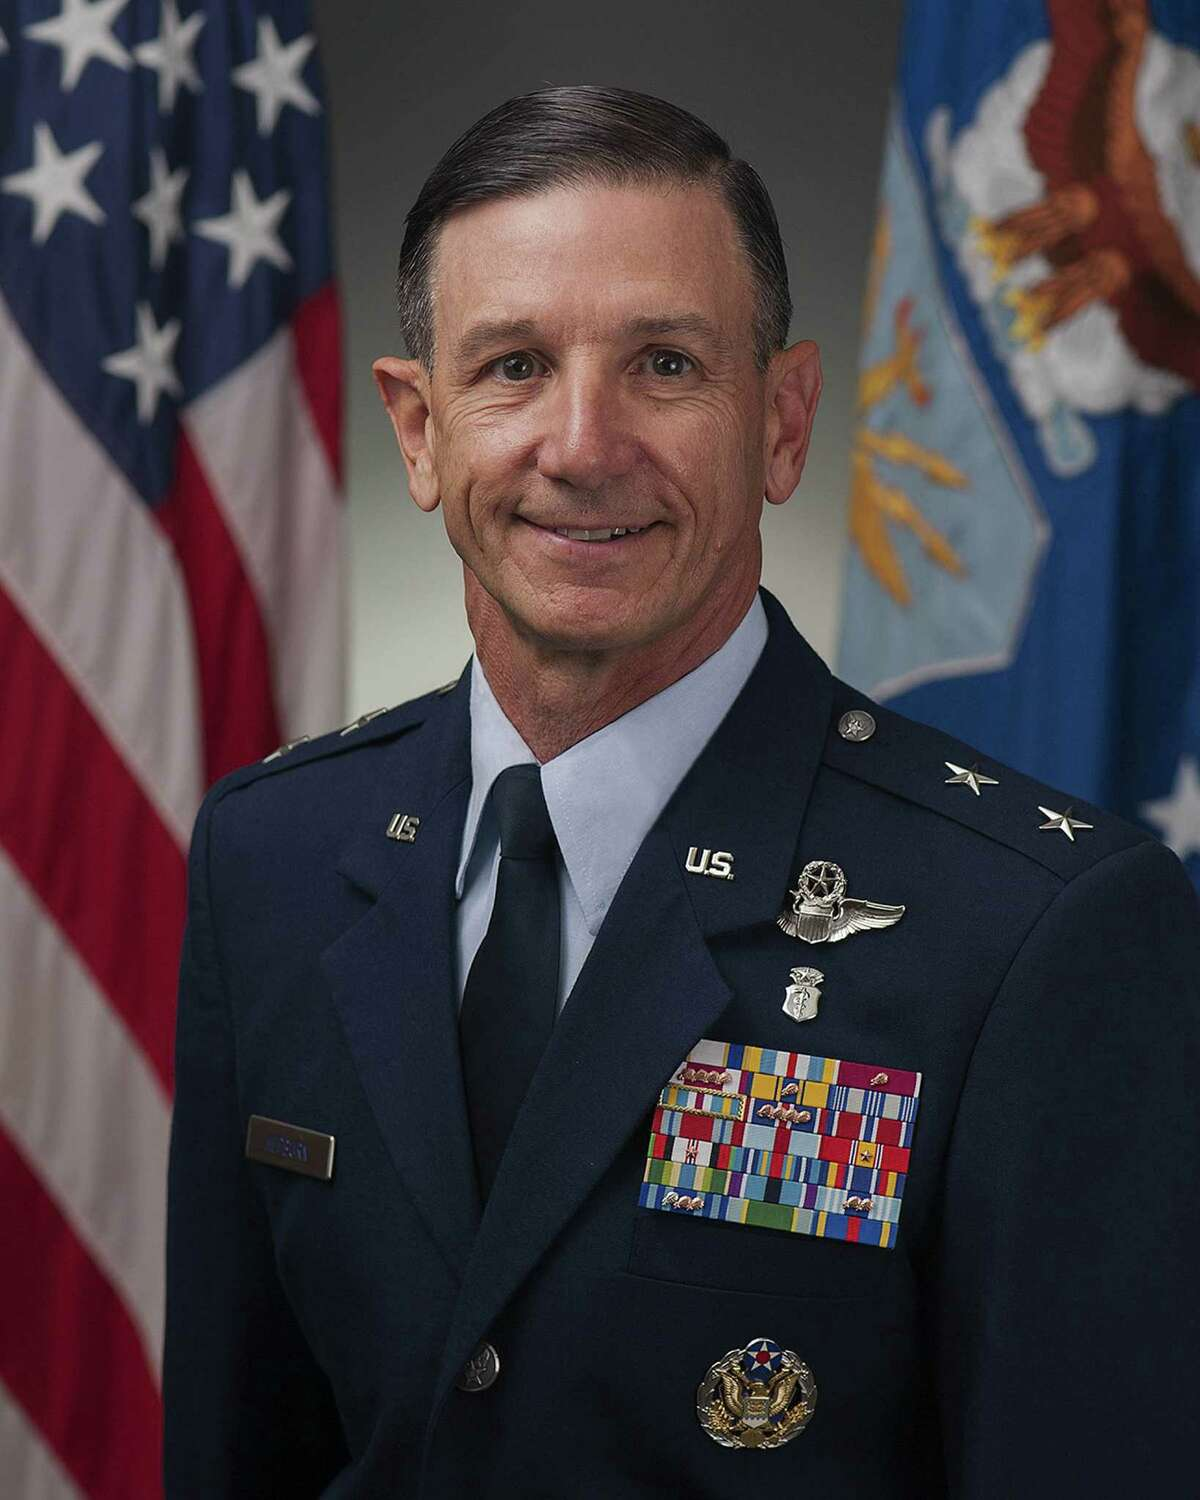 Maj. Gen. Byron C. Hepburn is commander of the 59th Medical Wing and director of the San Antonio Military Health System.